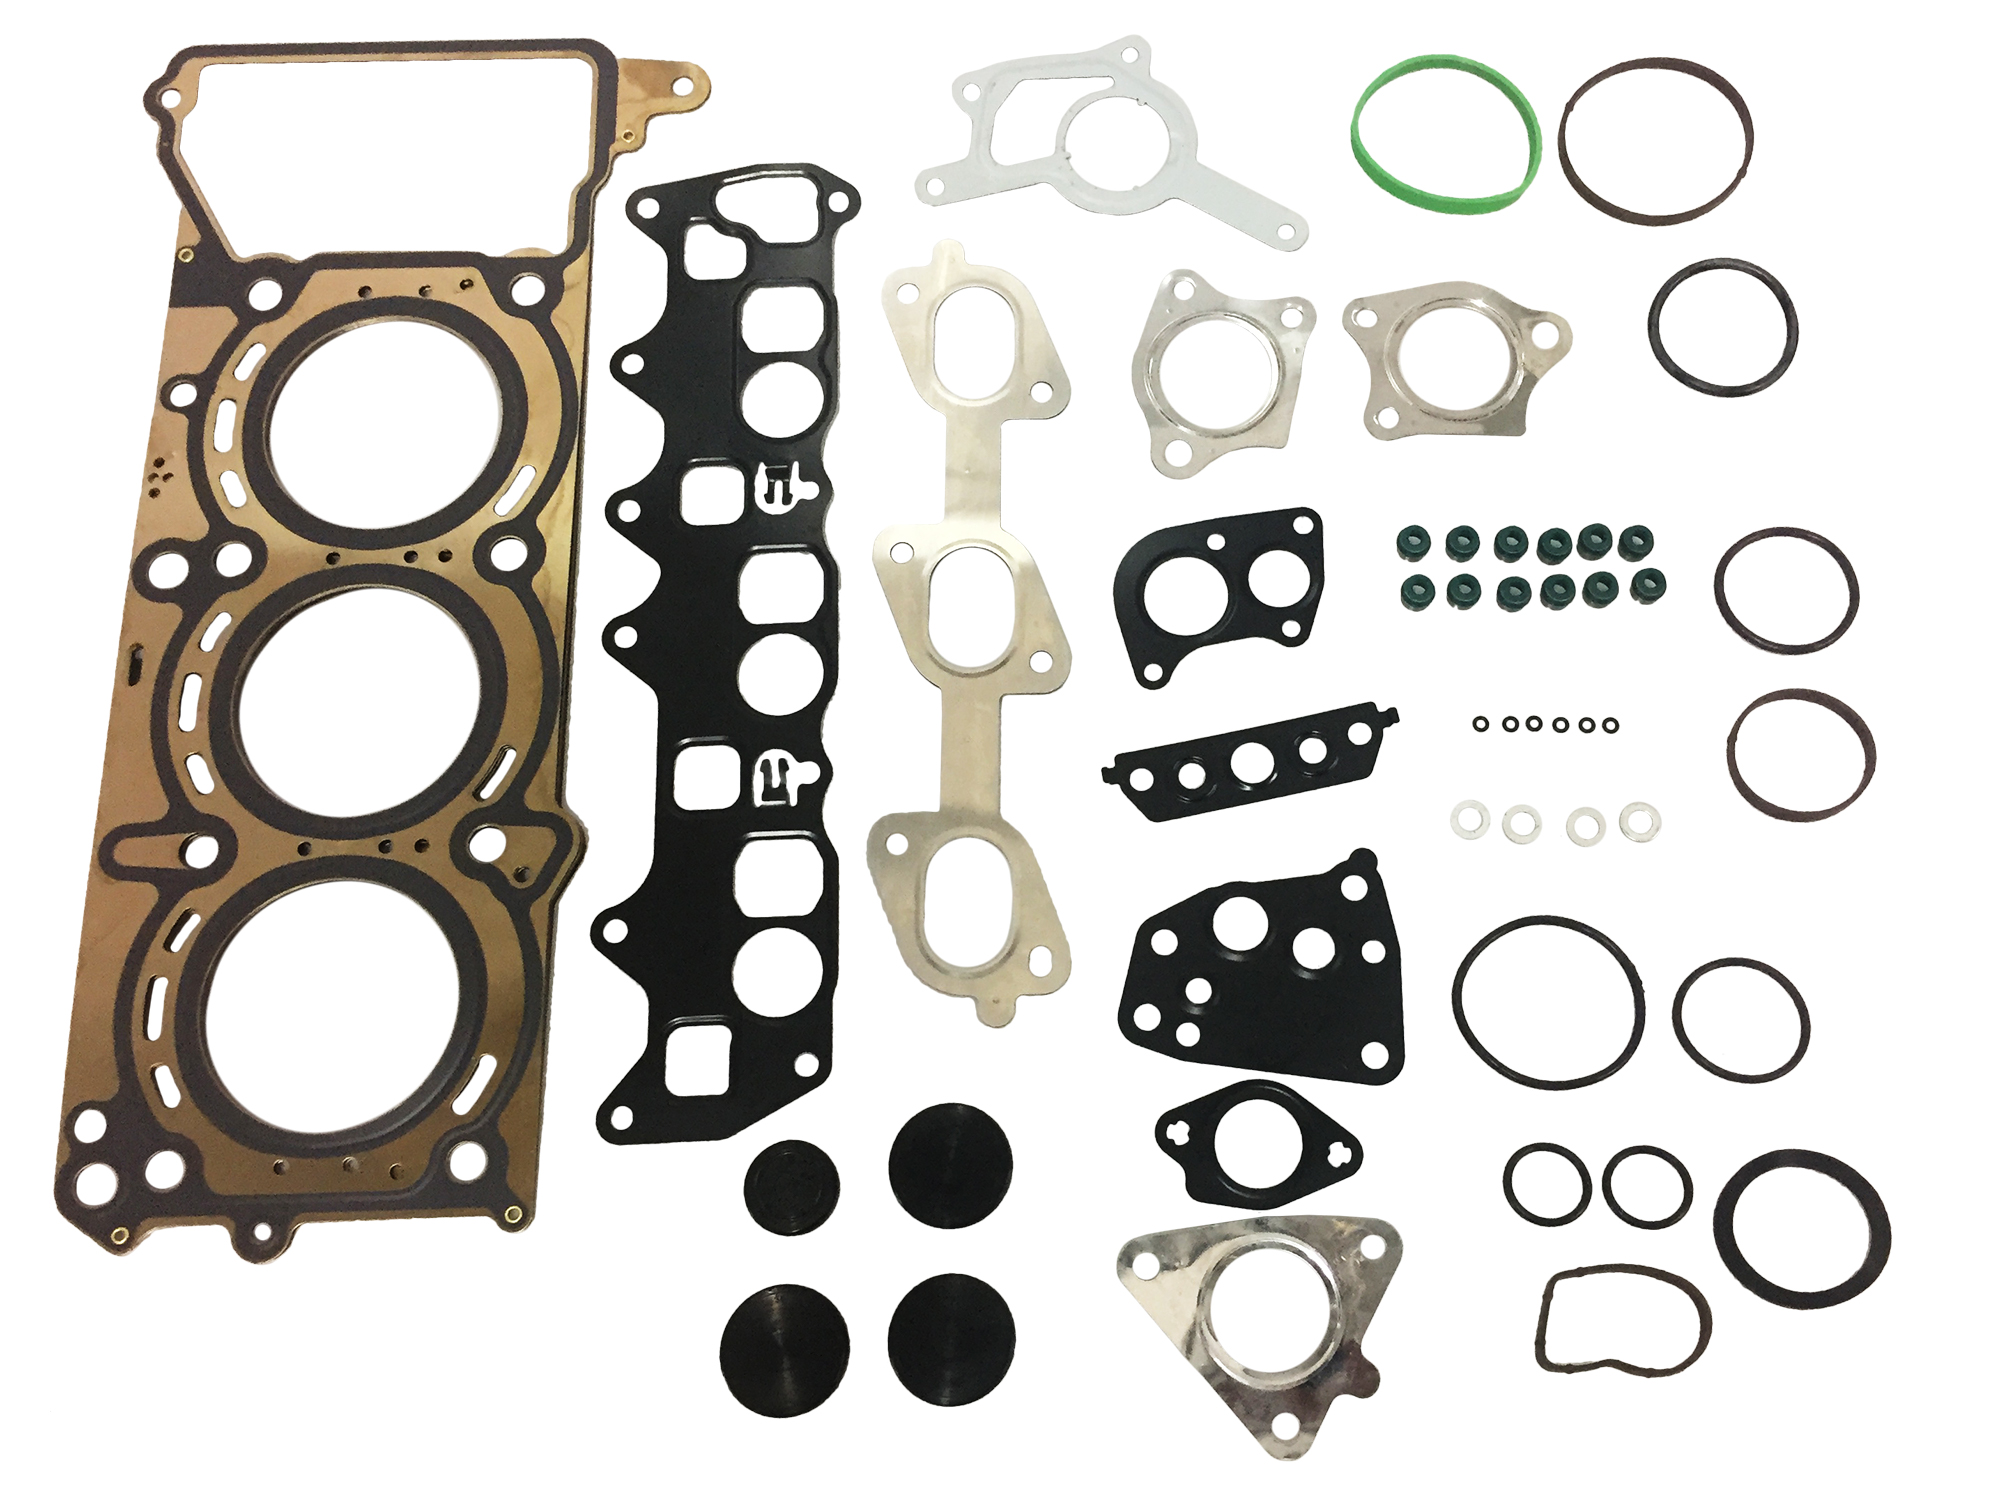 Cylinder head gasket cylinder head gasket set left Mercedes 3.0 CDI 642.820 NEW